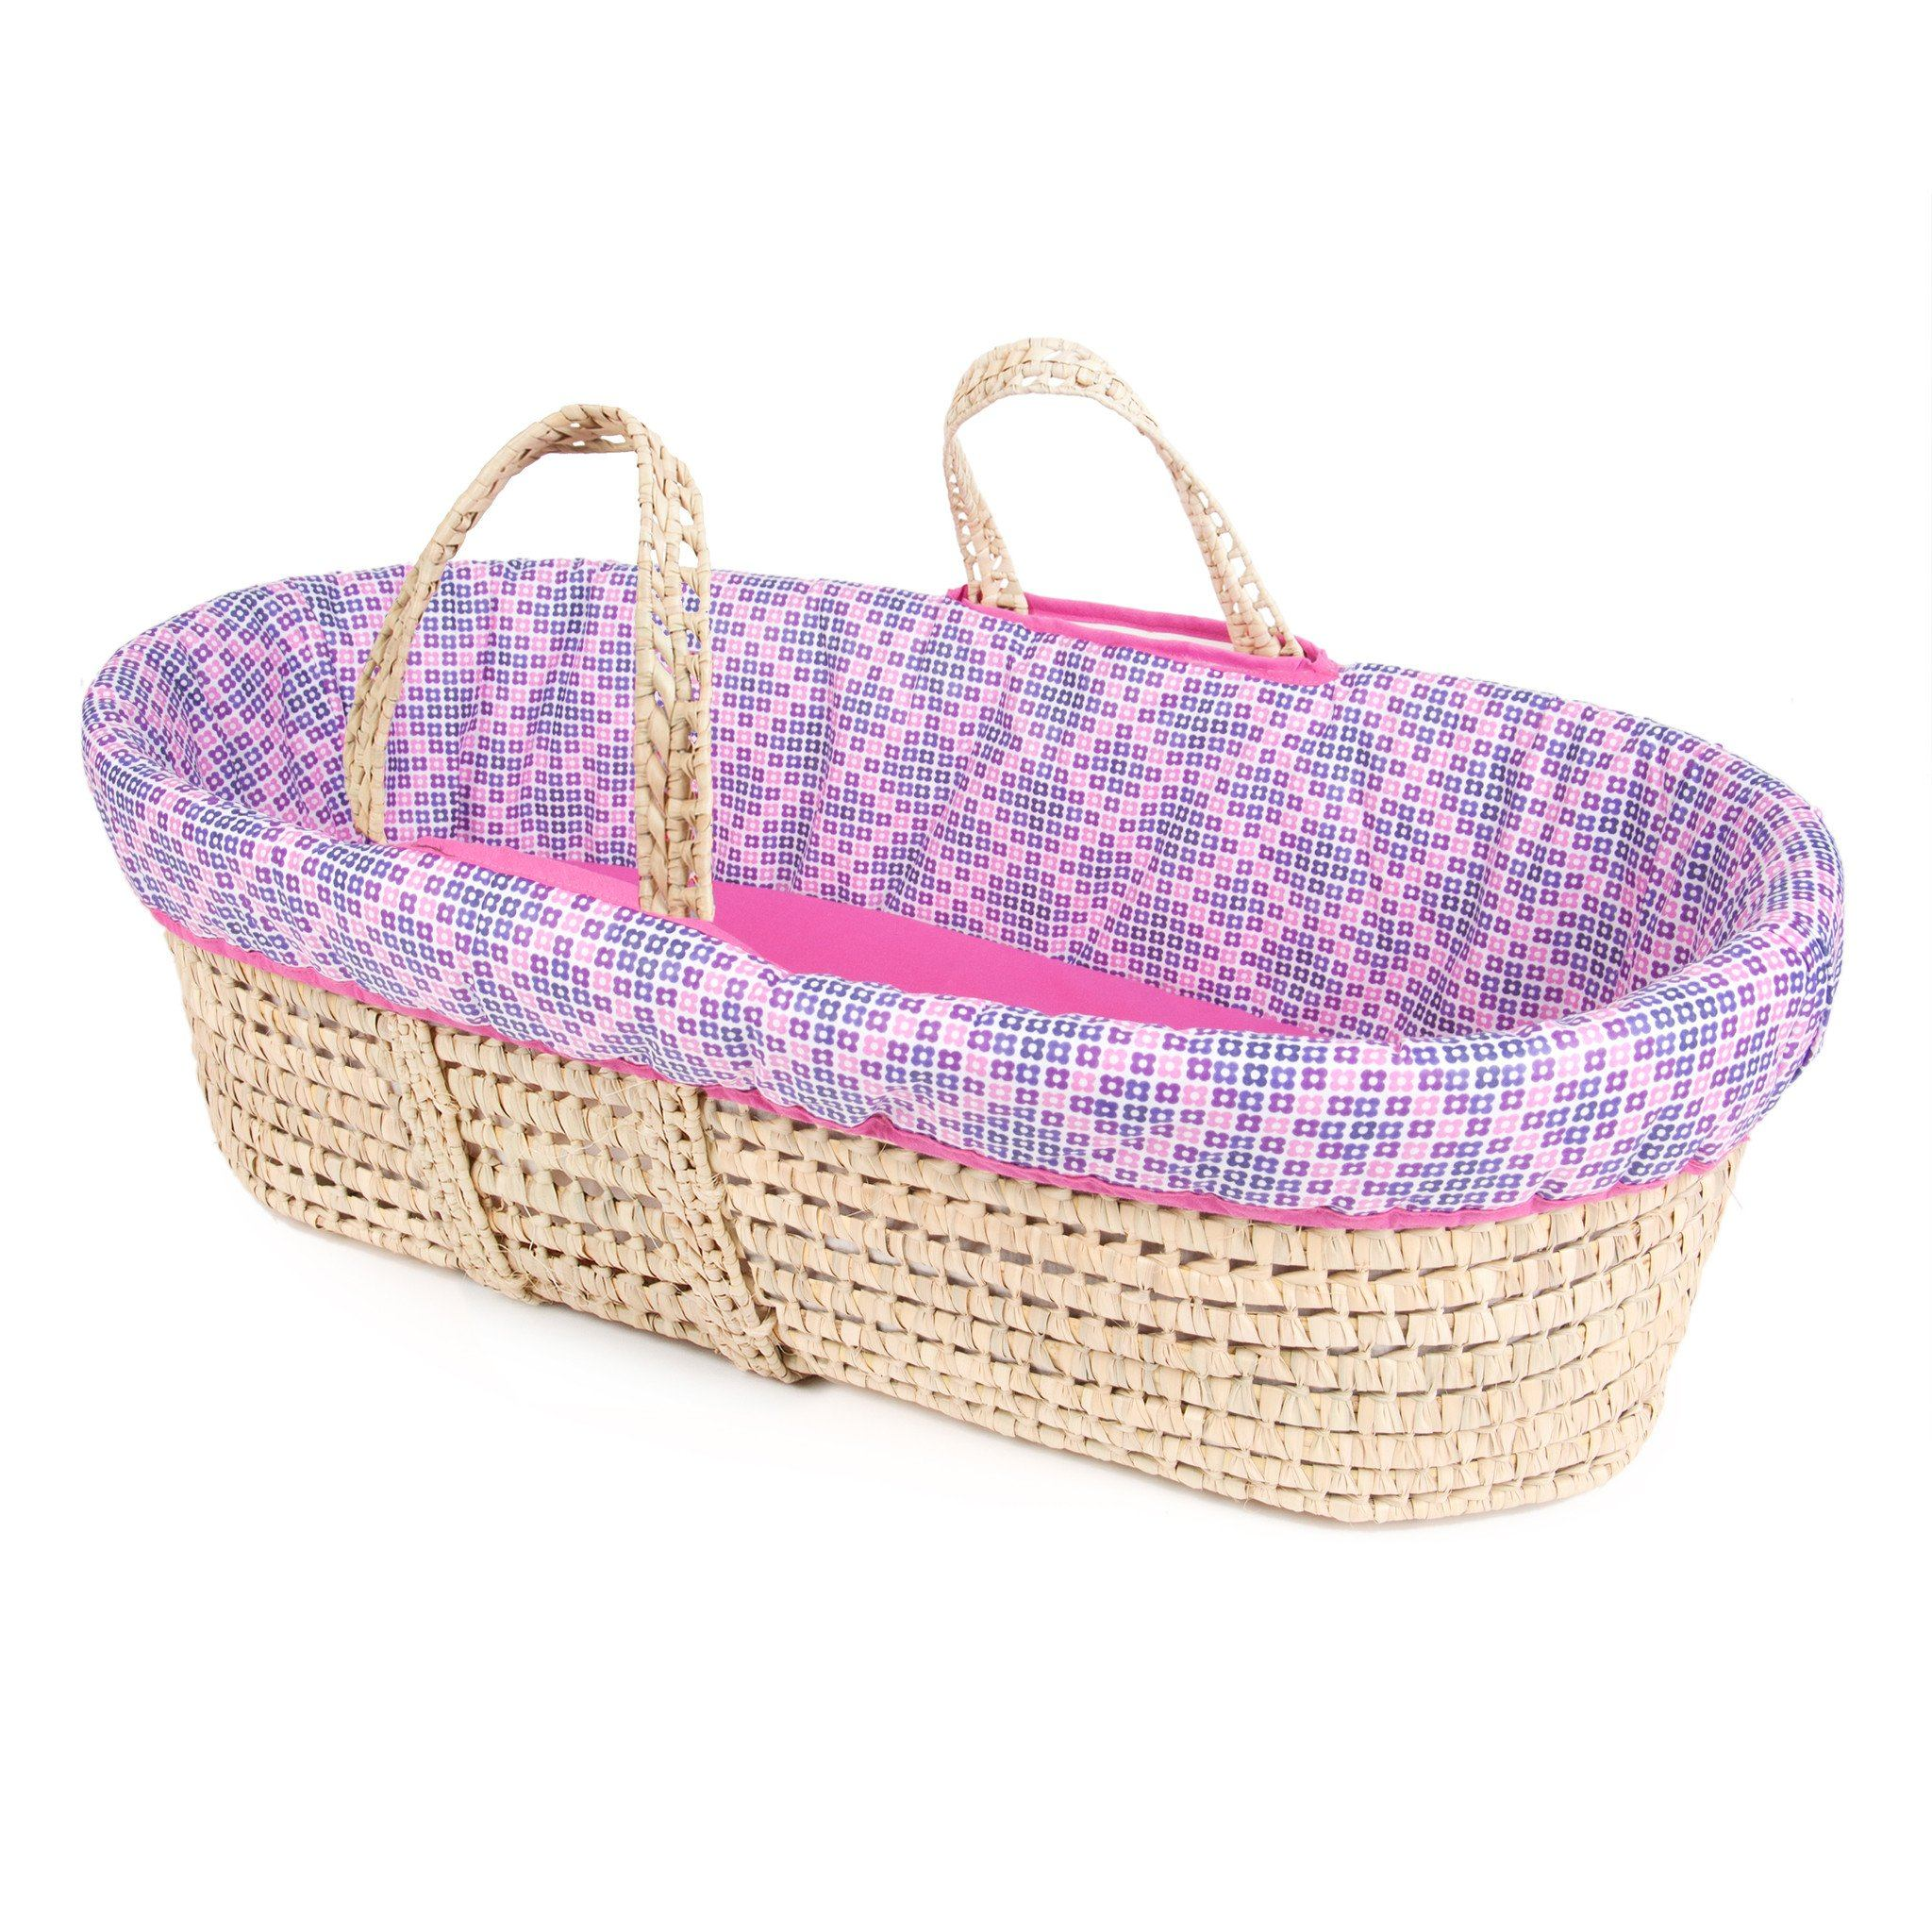 Moses Basket & Limited Edition Bedding